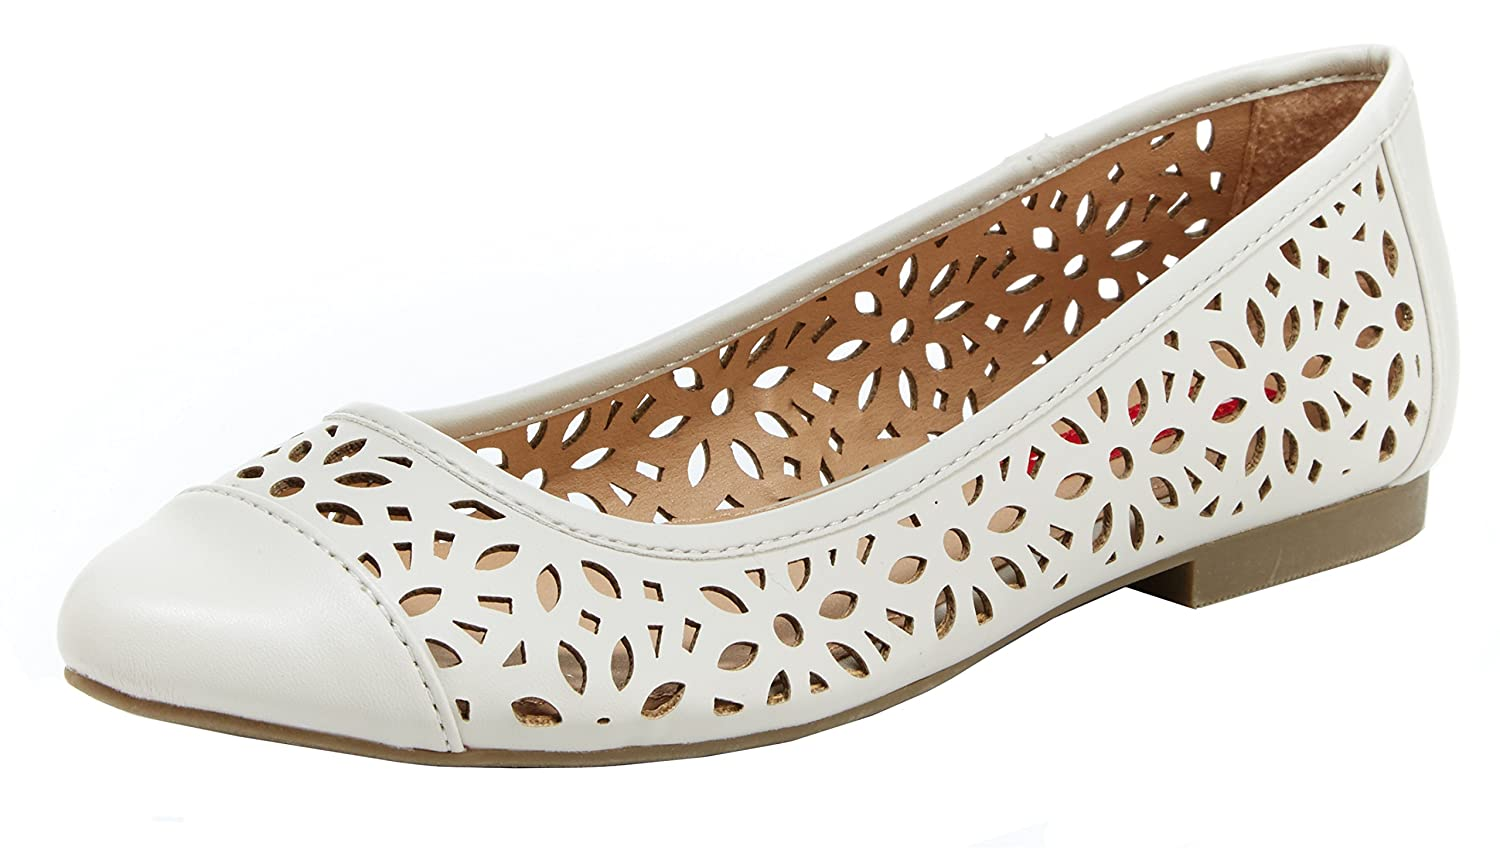 UNIONBAY Women's Willis Pointed Toe Flat B06XKPG5P7 6 UK/6 M US|Ivory